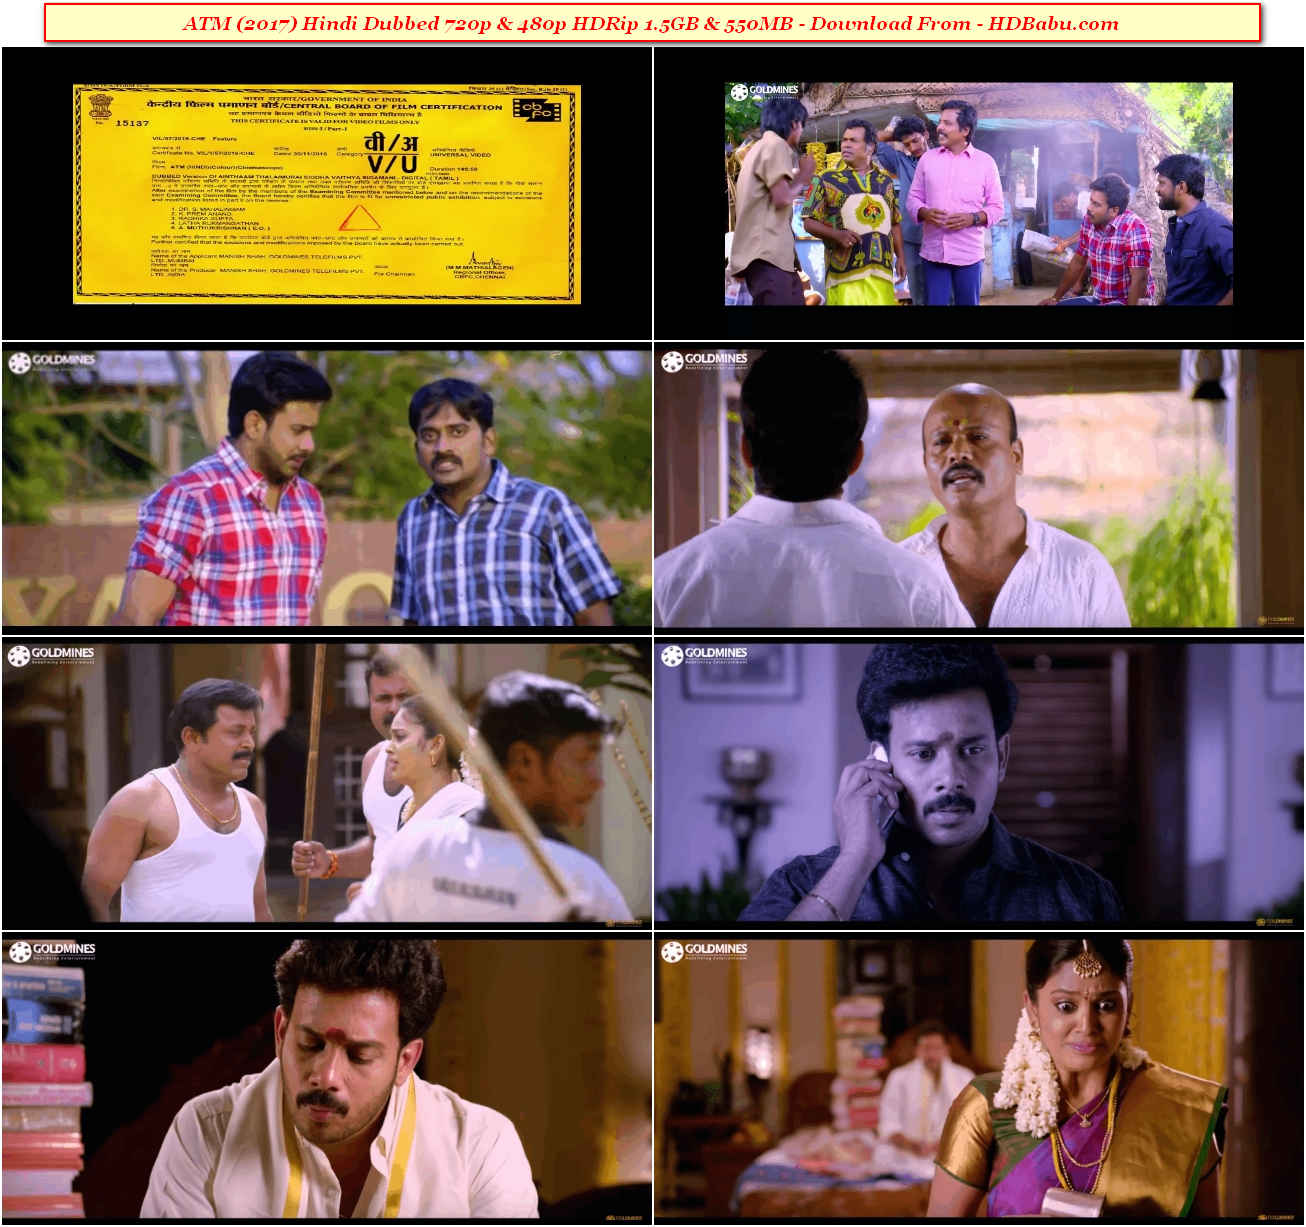 ATM Hindi Dubbed Full Movie Download